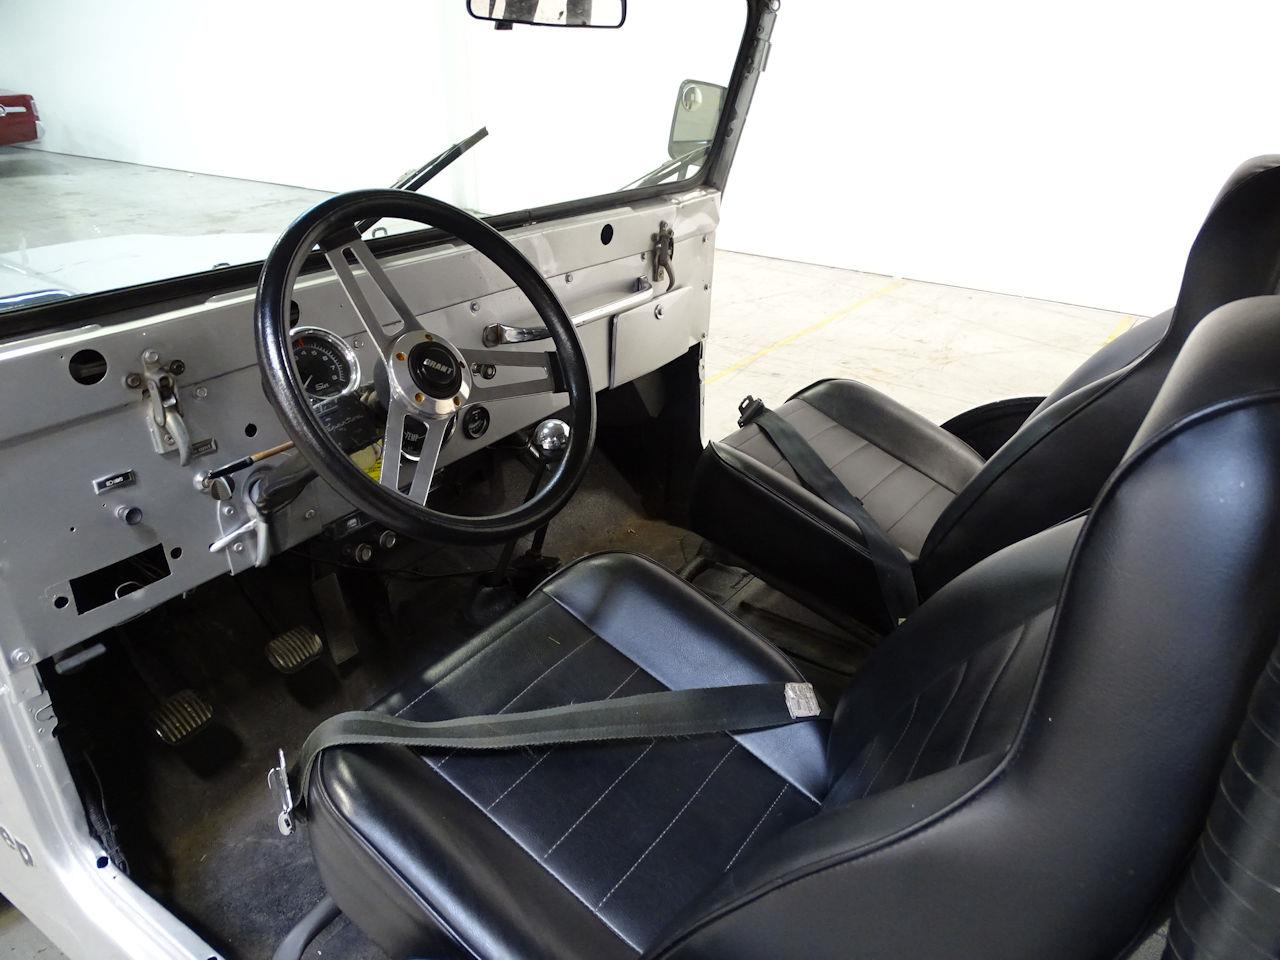 Large Picture of '75 CJ5 located in West Deptford New Jersey - $14,995.00 Offered by Gateway Classic Cars - Philadelphia - MDQG